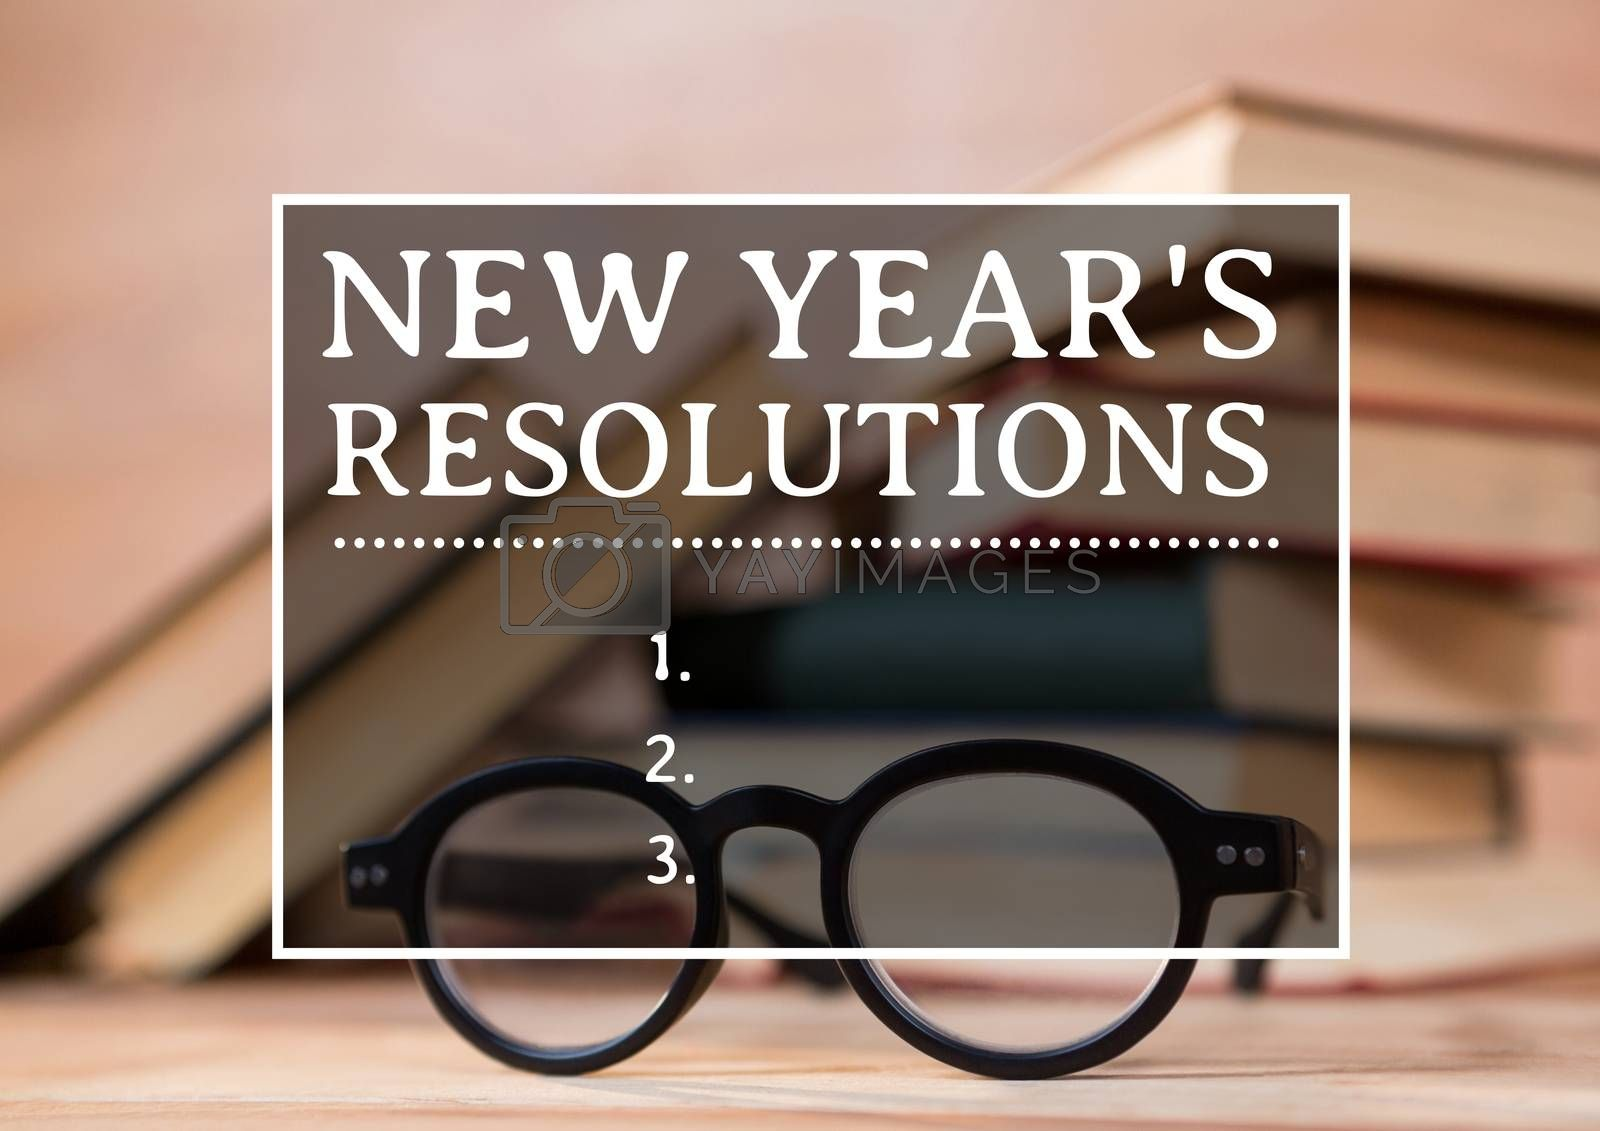 New year resolution goals against books and spectacles in background